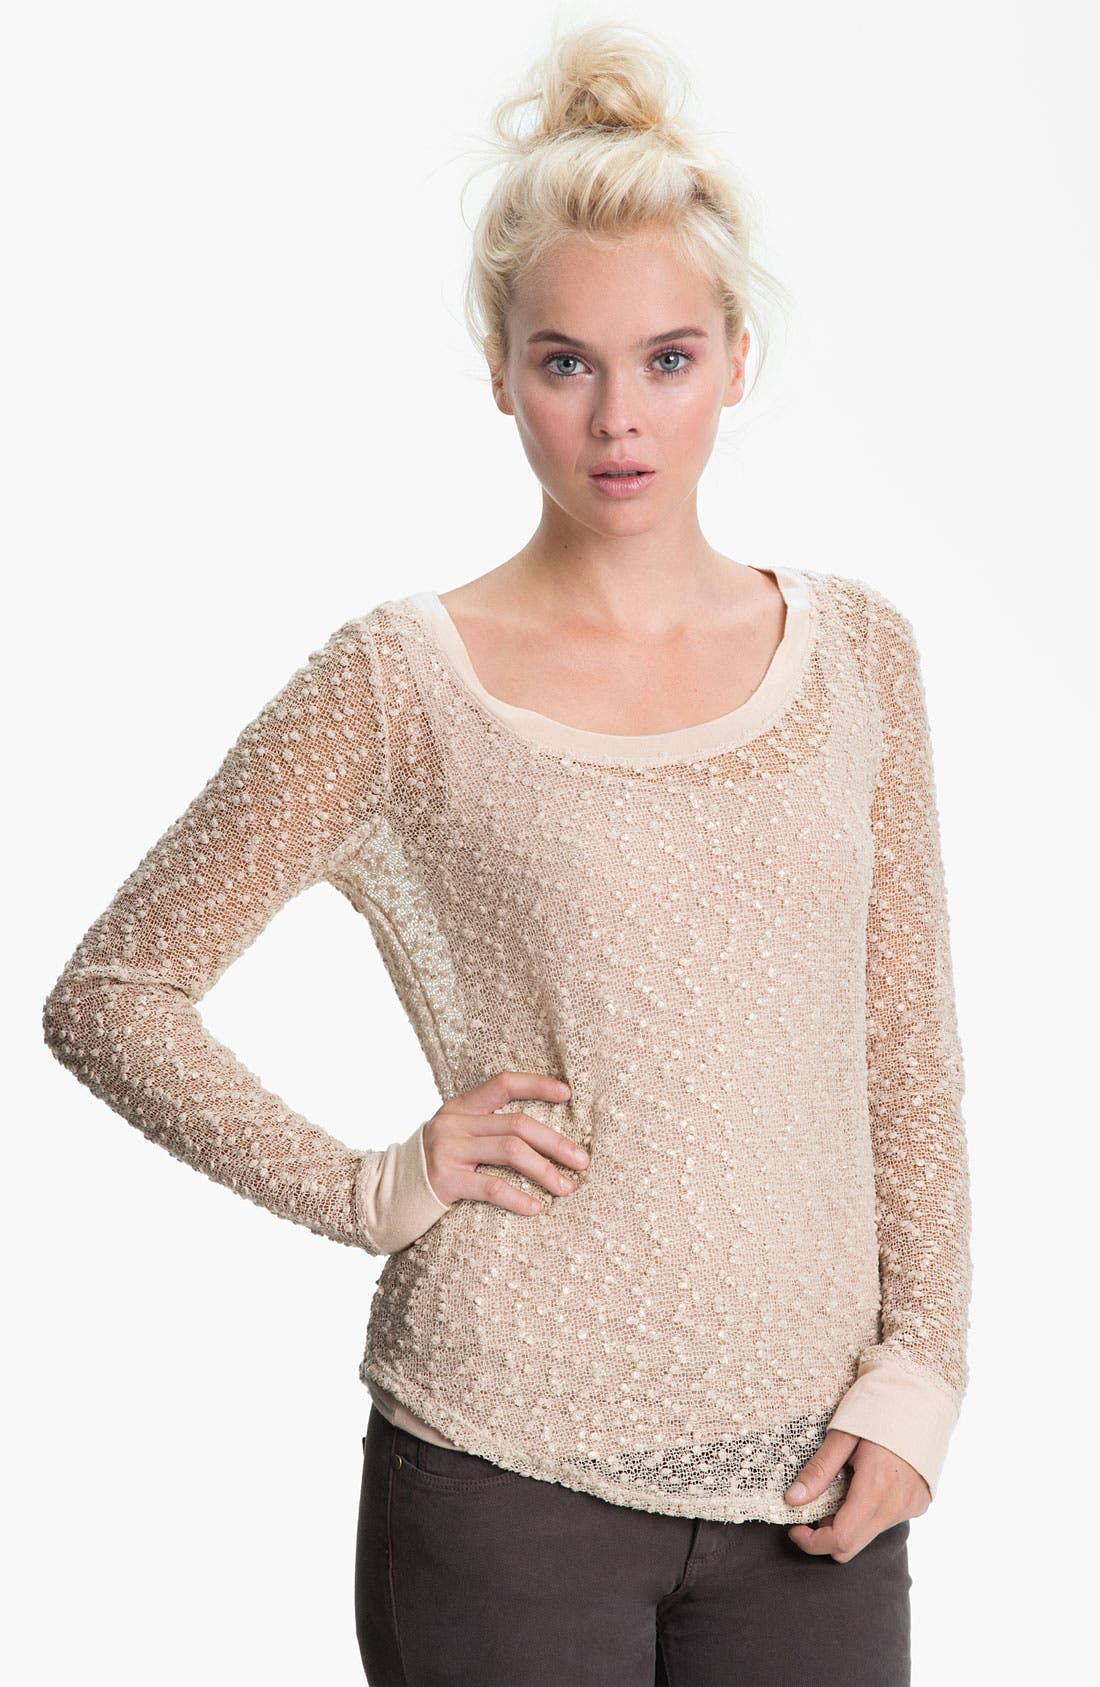 Alternate Image 1 Selected - Sanctuary 'Buddha' Sheer Metallic Bouclé Top